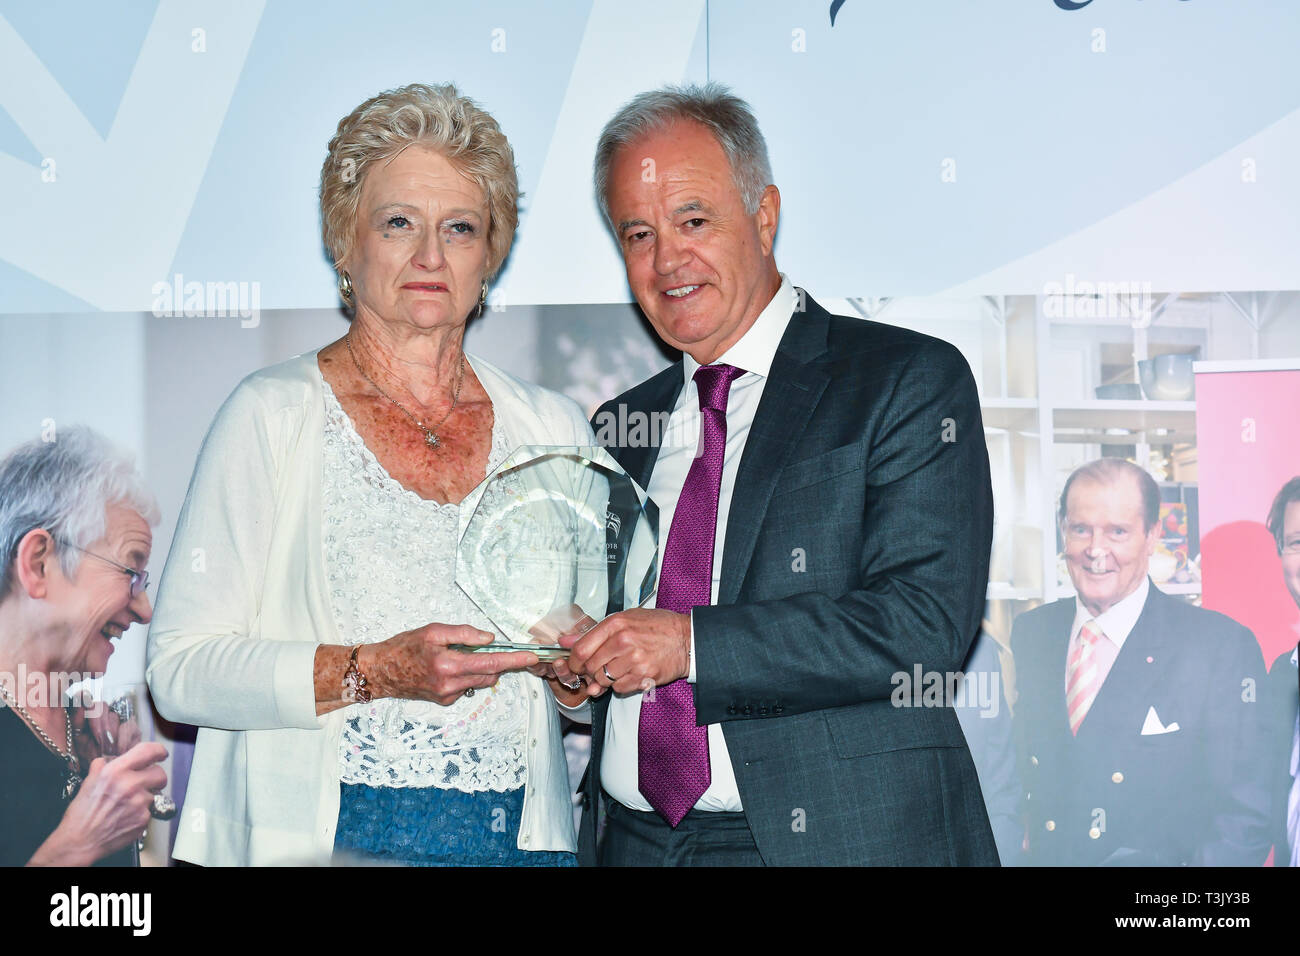 London, UK. 10th Apr, 2019. Martin Young Present  Winner of Local Hero – Janet Lynn of the 7th annual Churchill Awards honour achievements of the Over 65's at Claridge's Hotel on 10 March 2019, London, UK. Credit: Picture Capital/Alamy Live News Stock Photo